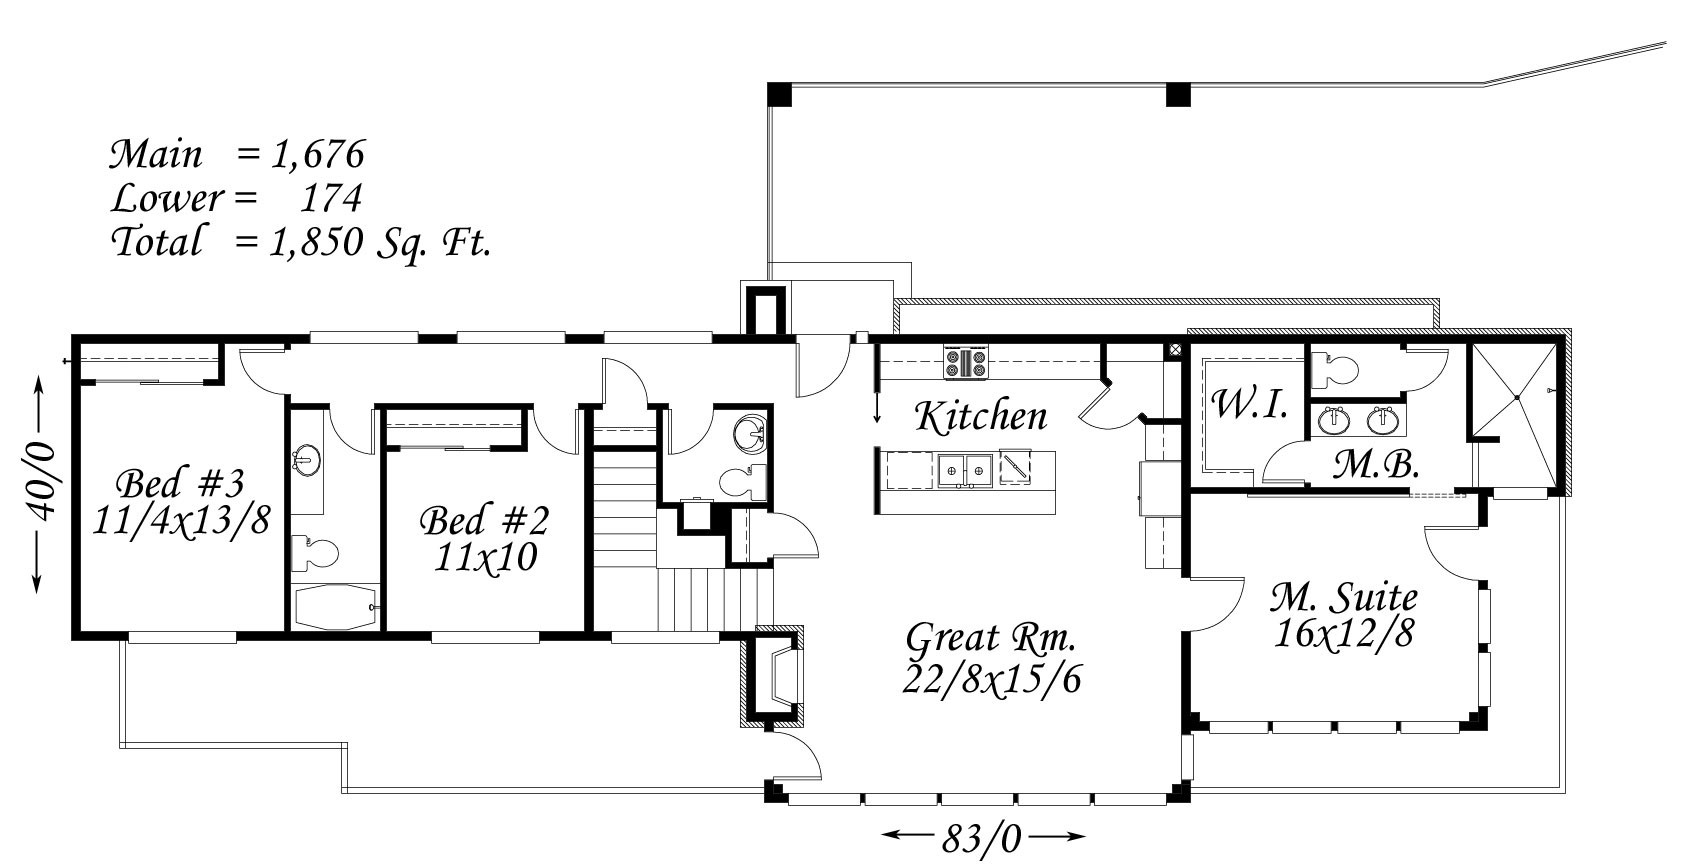 Casa moderna house plan designed to build lake oswego for Cost to build 2500 sq ft house